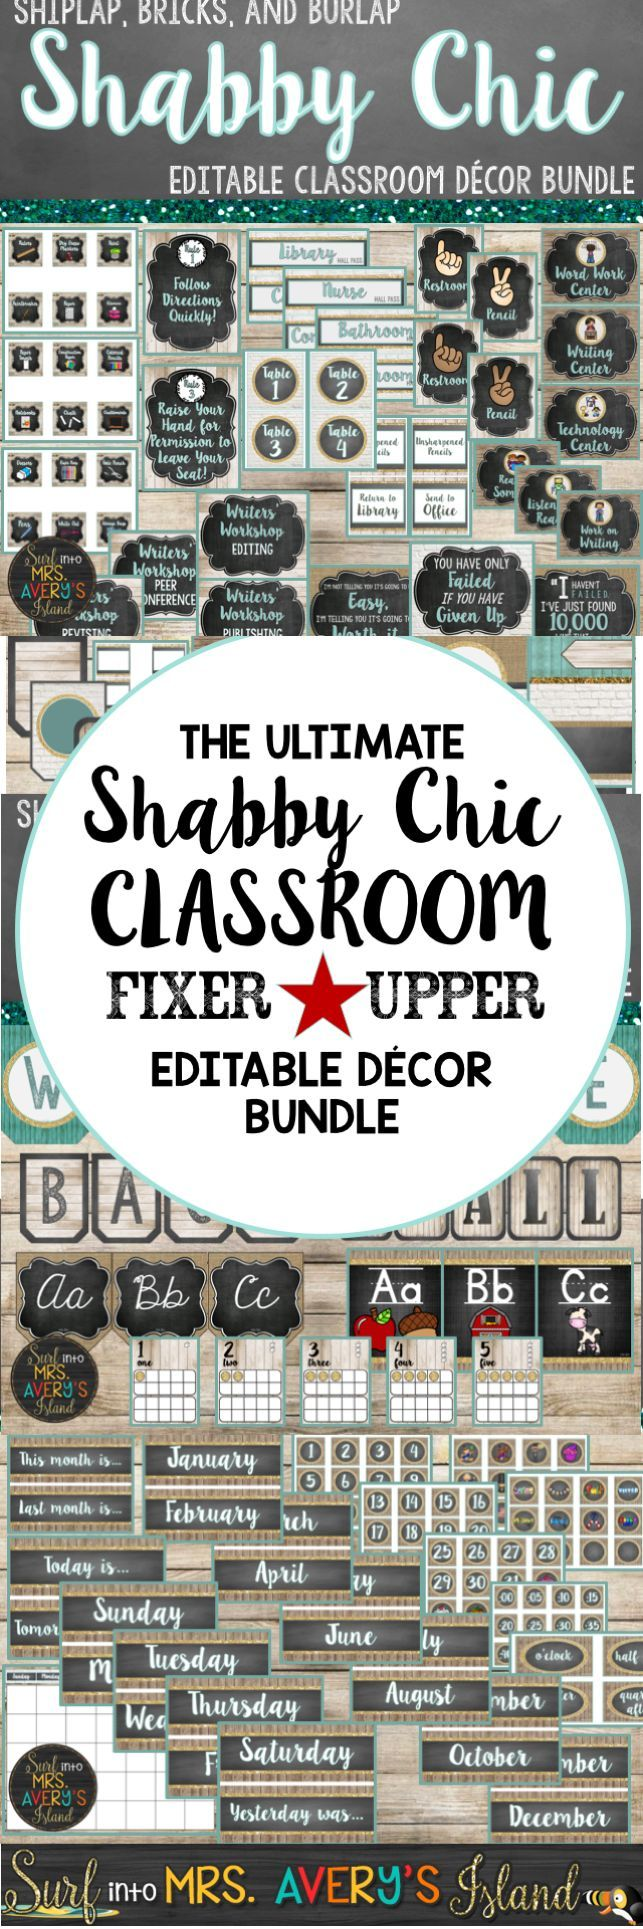 Are you tired of having a hodge podge of classroom decor?  Click here to discover a shabby chic classroom decor bundle FULL of back to school organization printables, classroom ideas, classroom management posters, growth mindset posters, and so much more!  There's no doubt Chip and Joanna would put their seal of approval on this Shiplap, Bricks, and Burlap Classroom (Fixer Upper) Bundle!  Take a look at the preview and see what other teachers have to say!